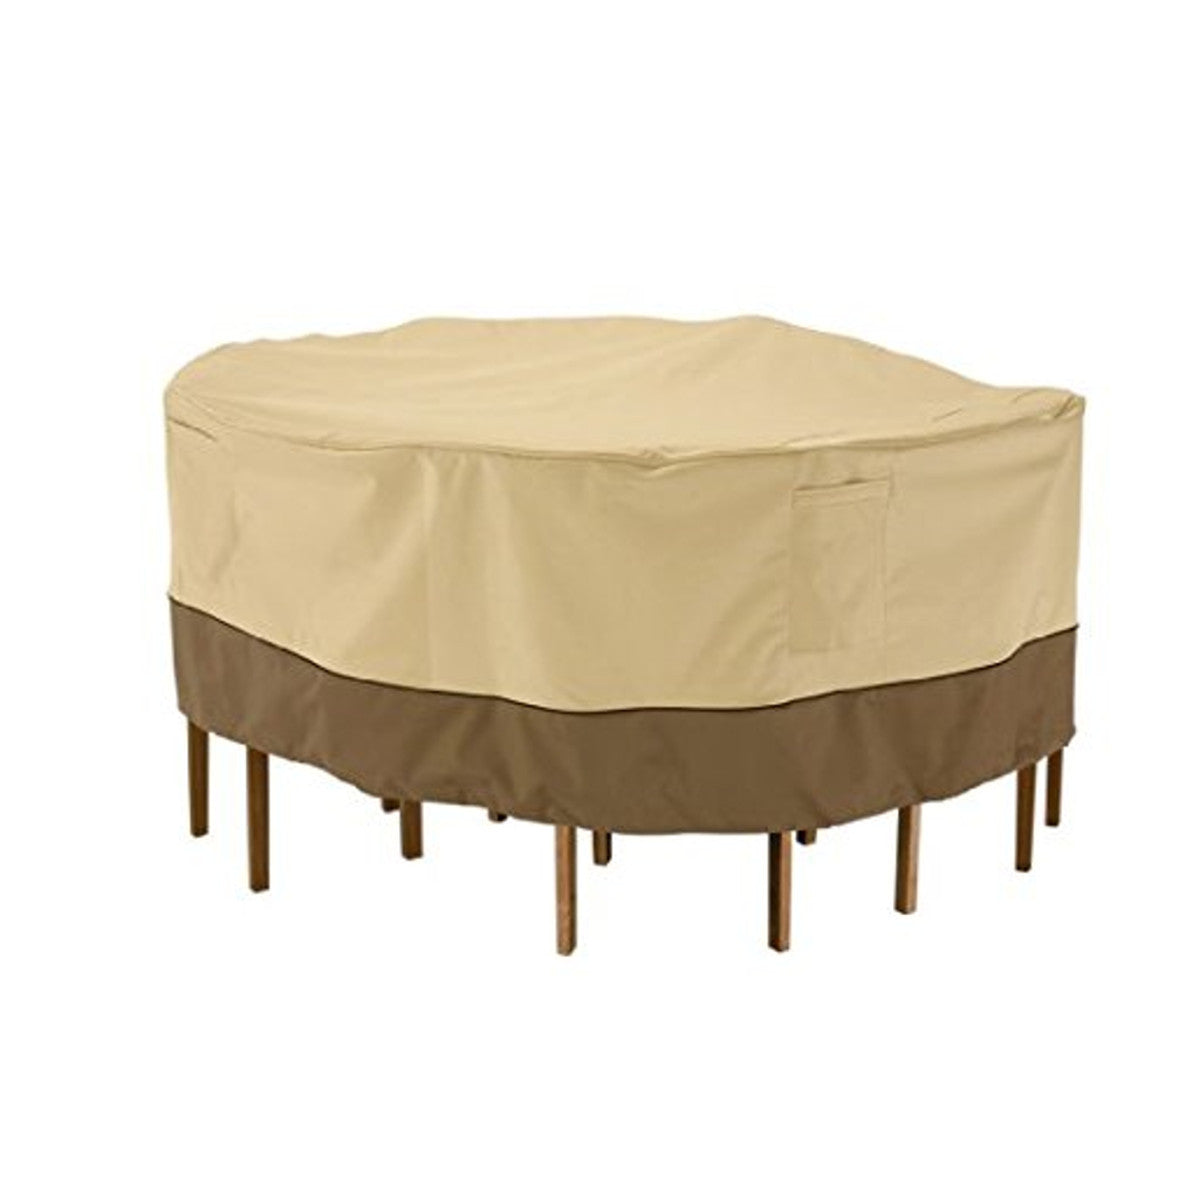 Garden Round Waterproof Table Cover Patio Furniture Cover Outdoor Shelter Protection